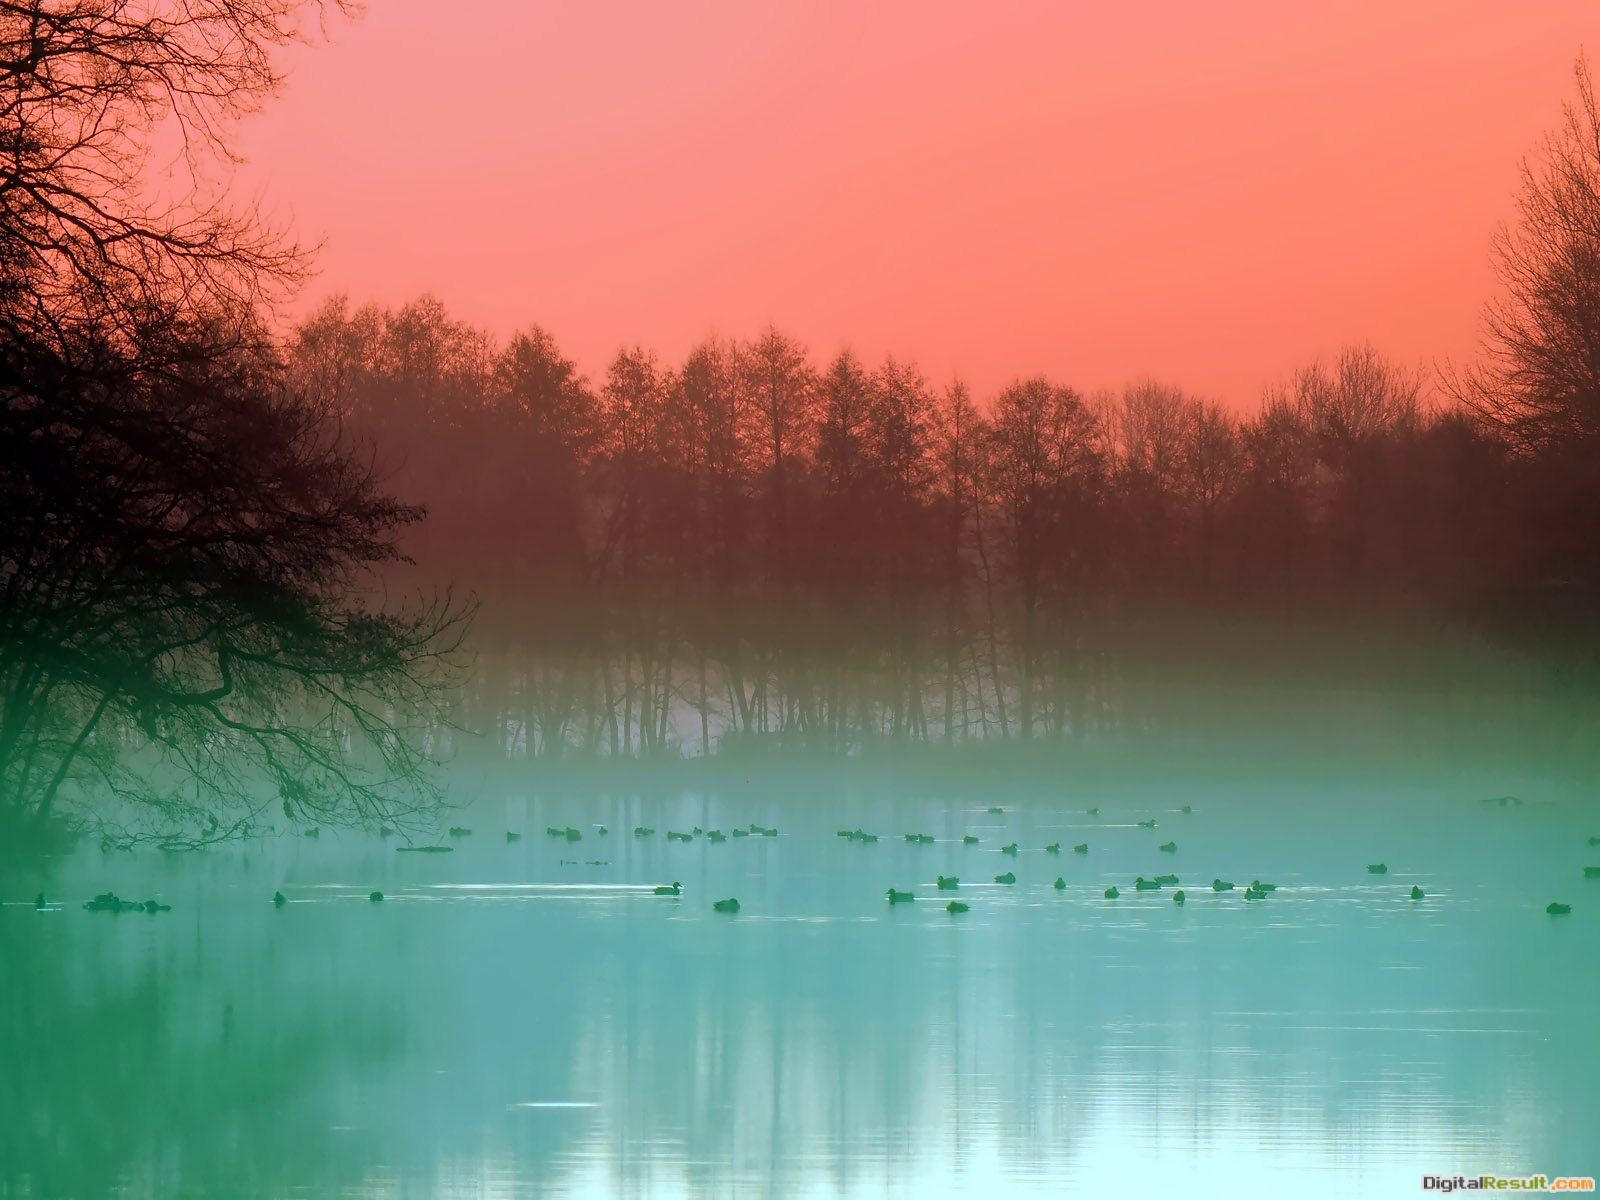 Ducks Swimming in the Lake Morning wallpaperForWallpaper com 1948